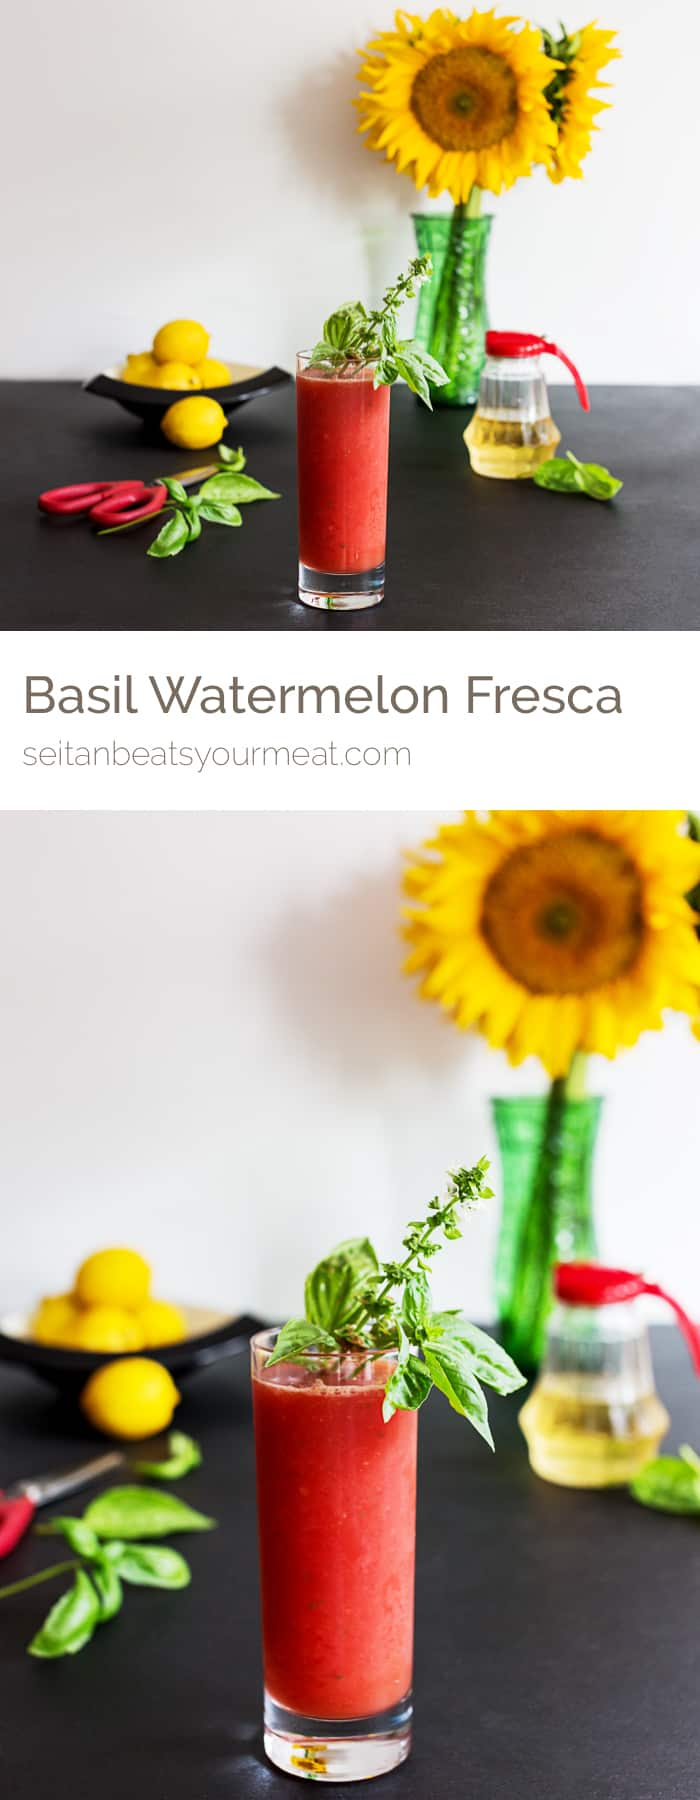 Watermelon agua fresca in glass with fresh basil garnish with flowers and lemons in background